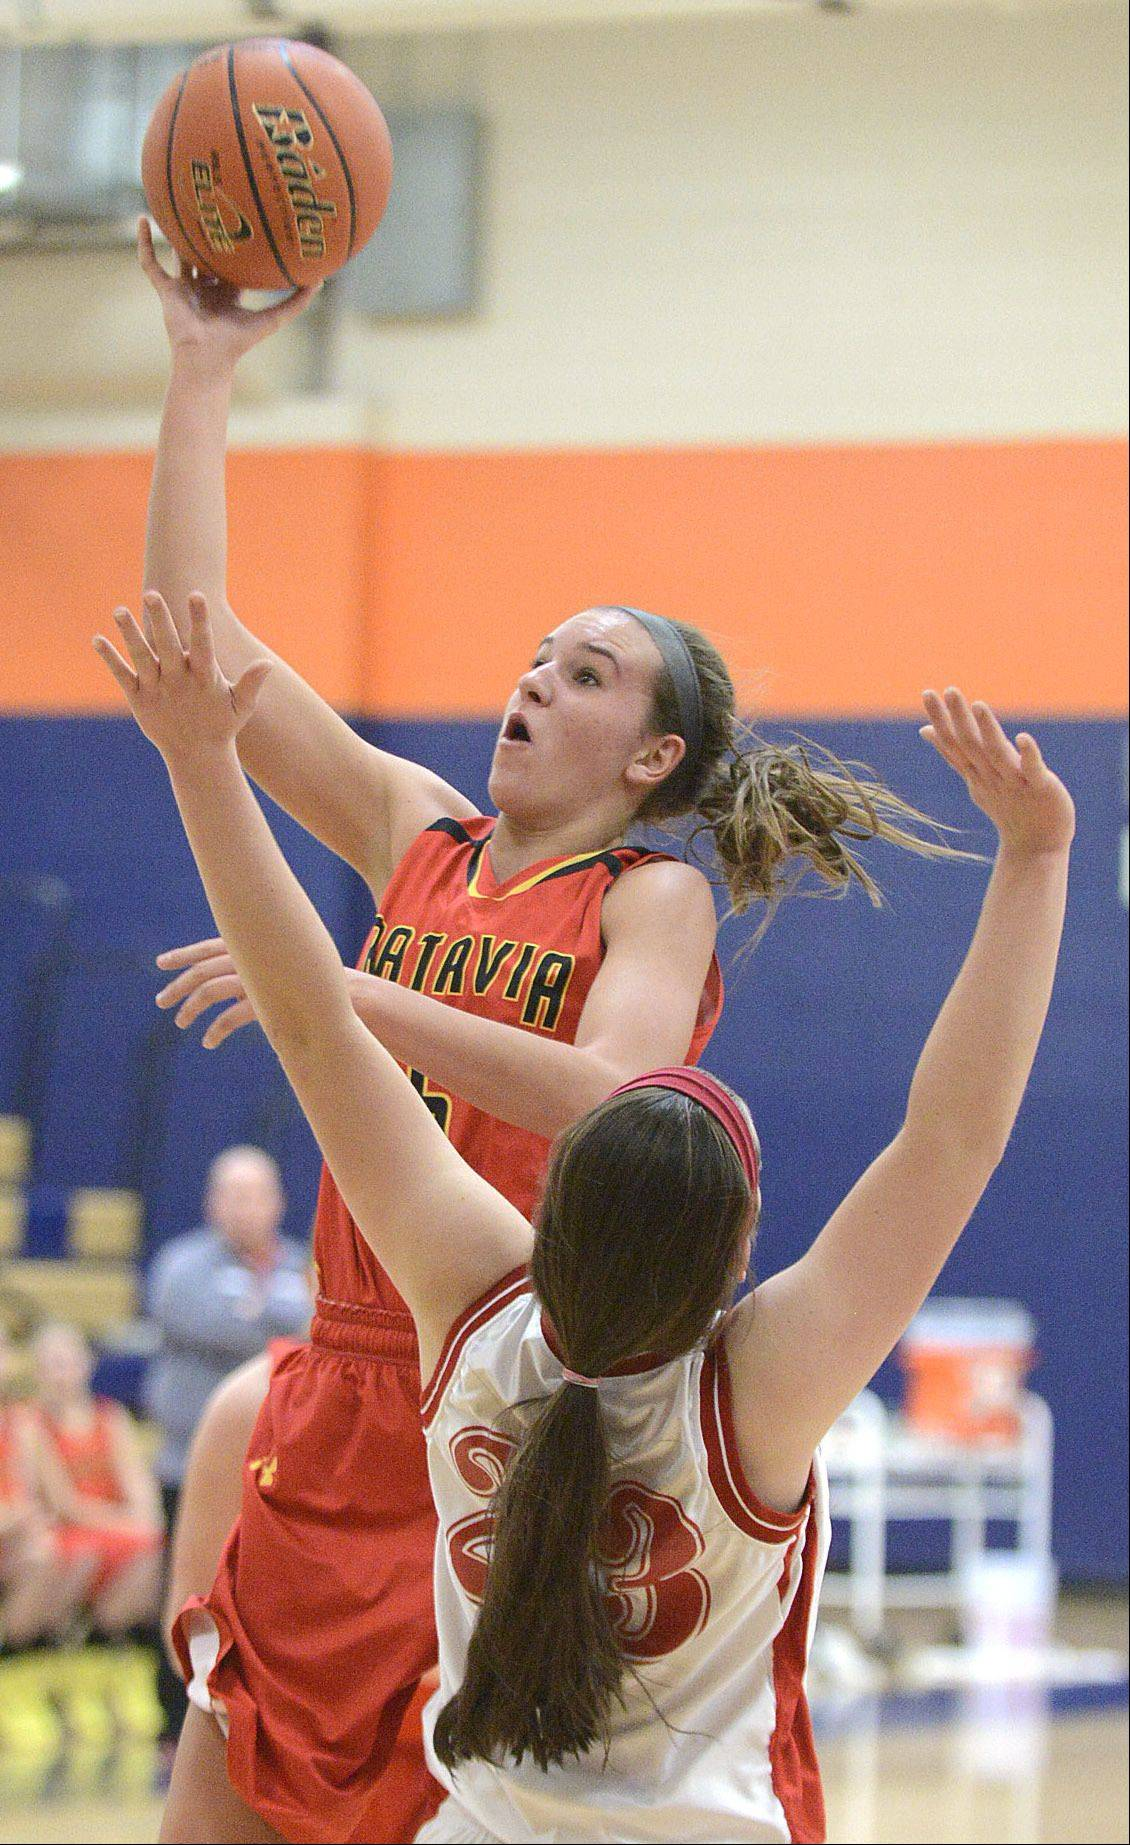 Batavia�s Liza Fruendt shoots over a block by Naperville Central�s Lisa Tassi in the second quarter on Saturday, December 14.